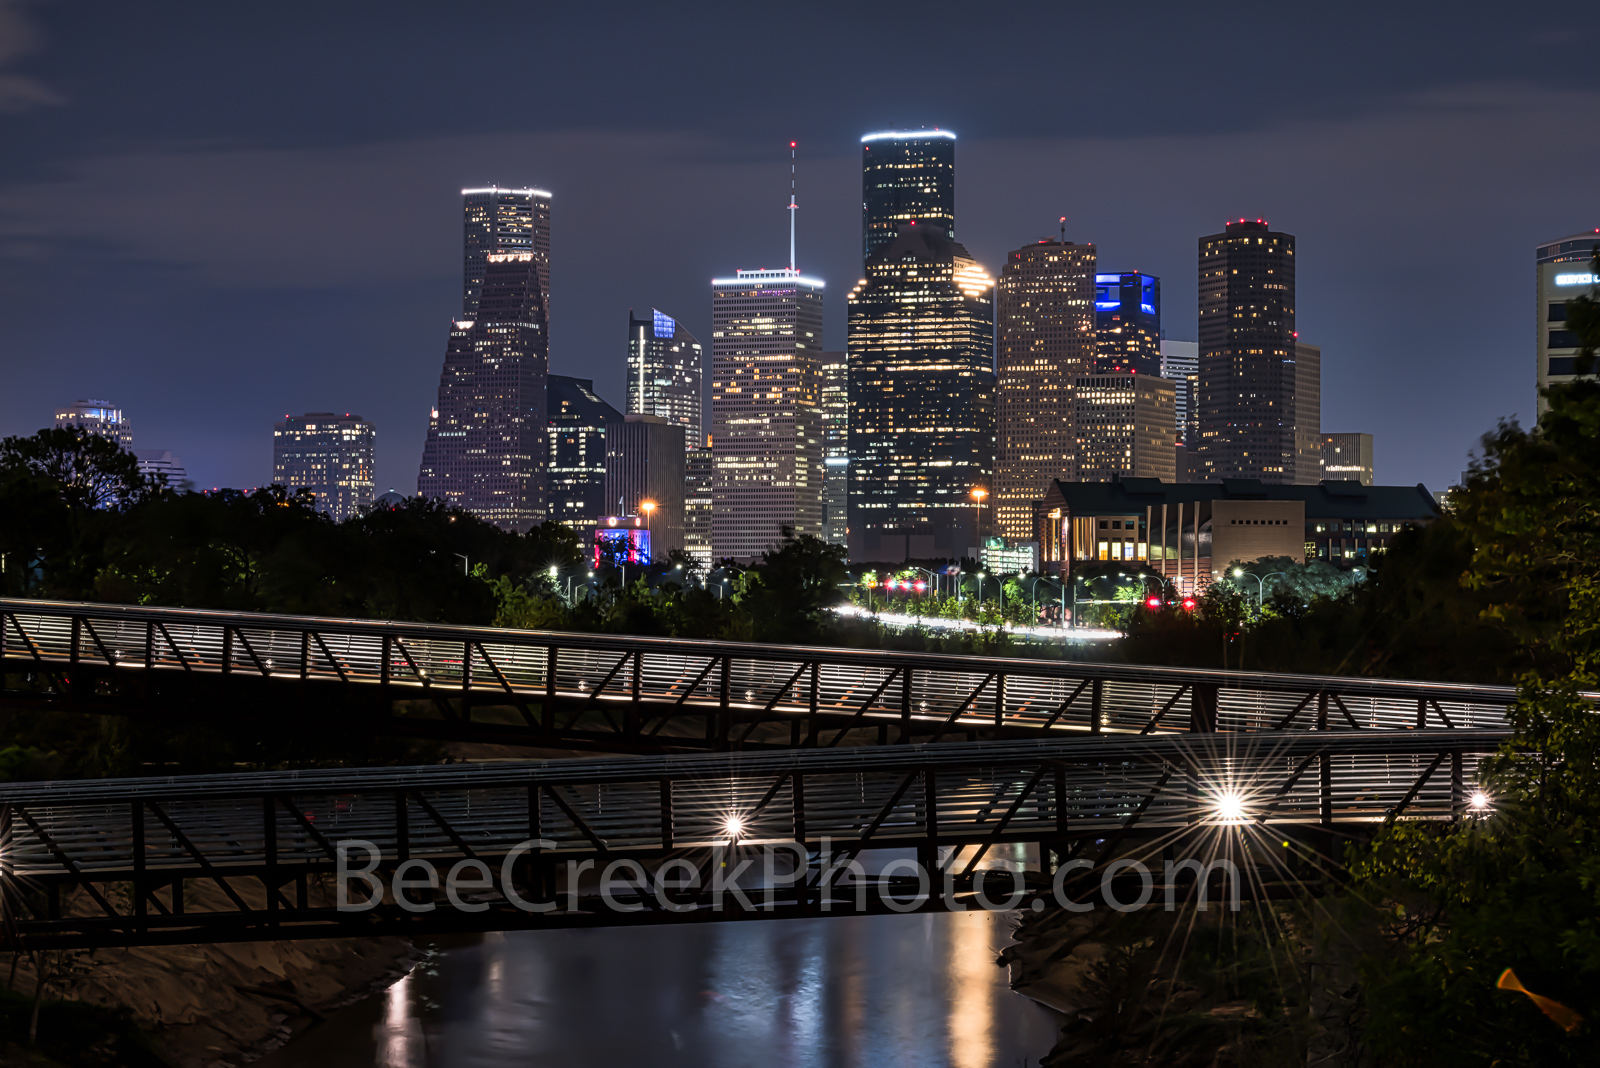 Houston skyline, Rosemont, pedestrian bridge, buffalo Bayou, downtown,night, city, parks, Houston stock, images of houston, , photo